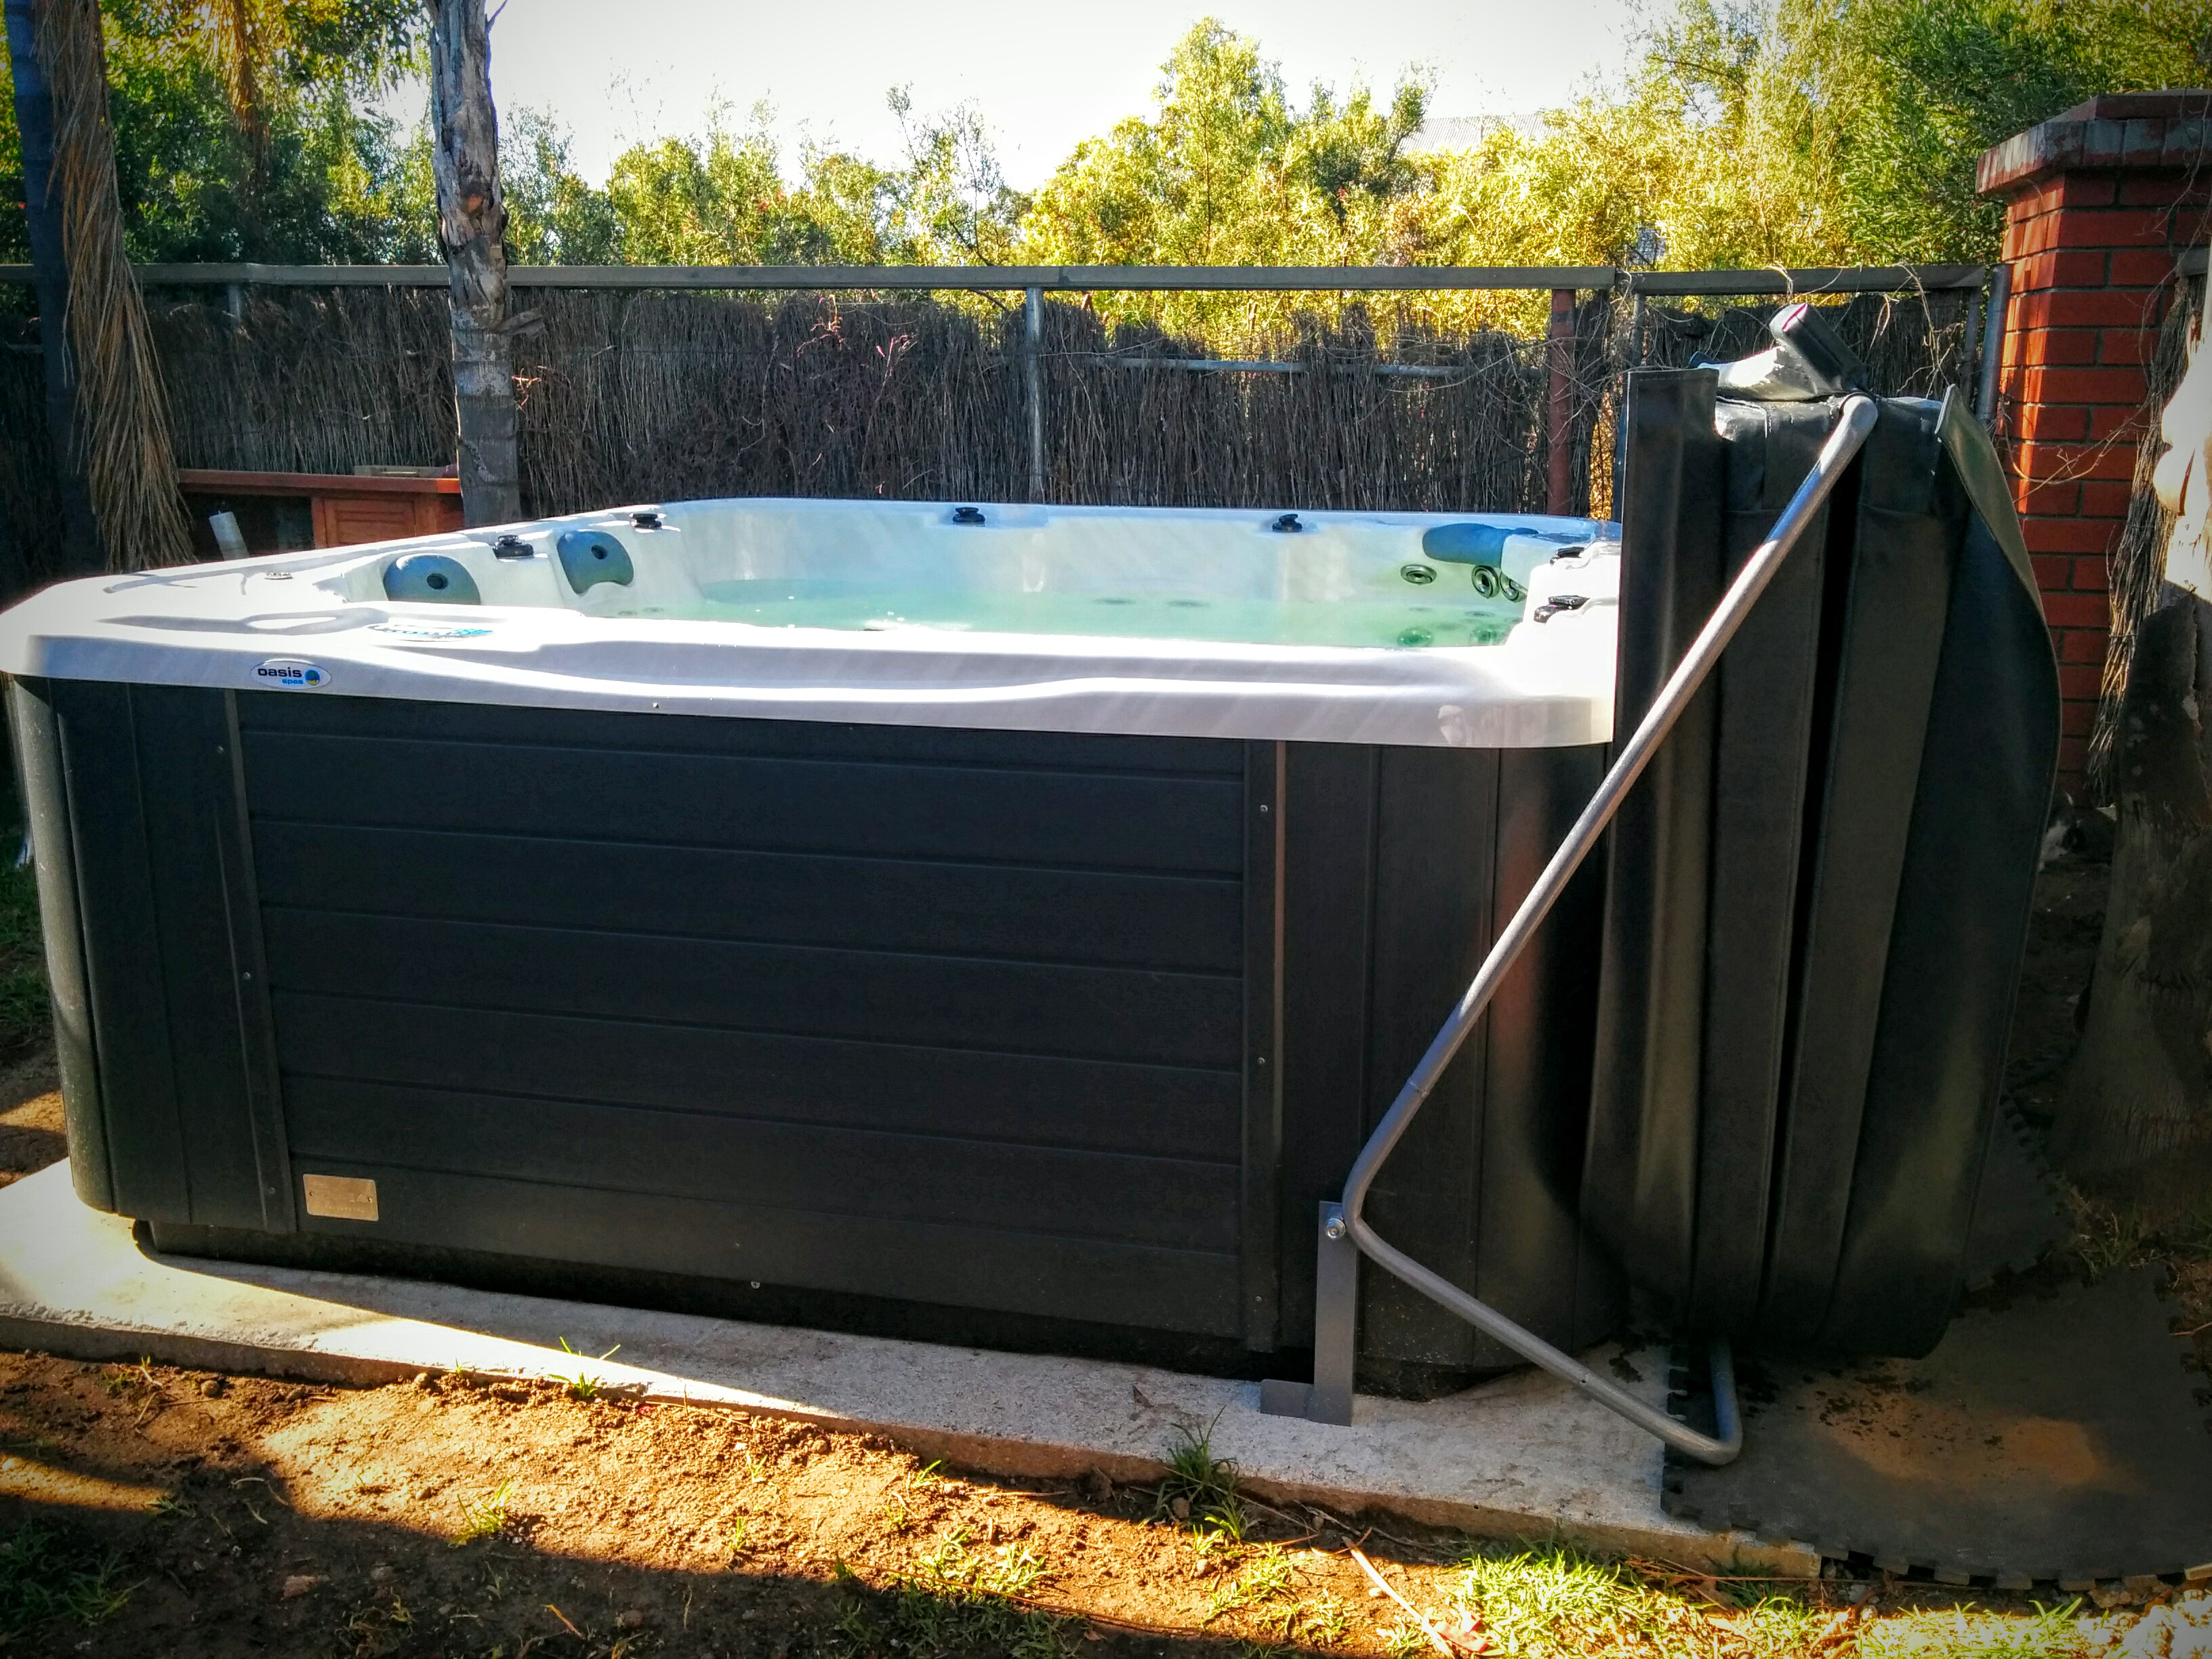 Diy Hot Tub Diy Spa Cover Lifter Home Made For 50 Metal Conduit Frame